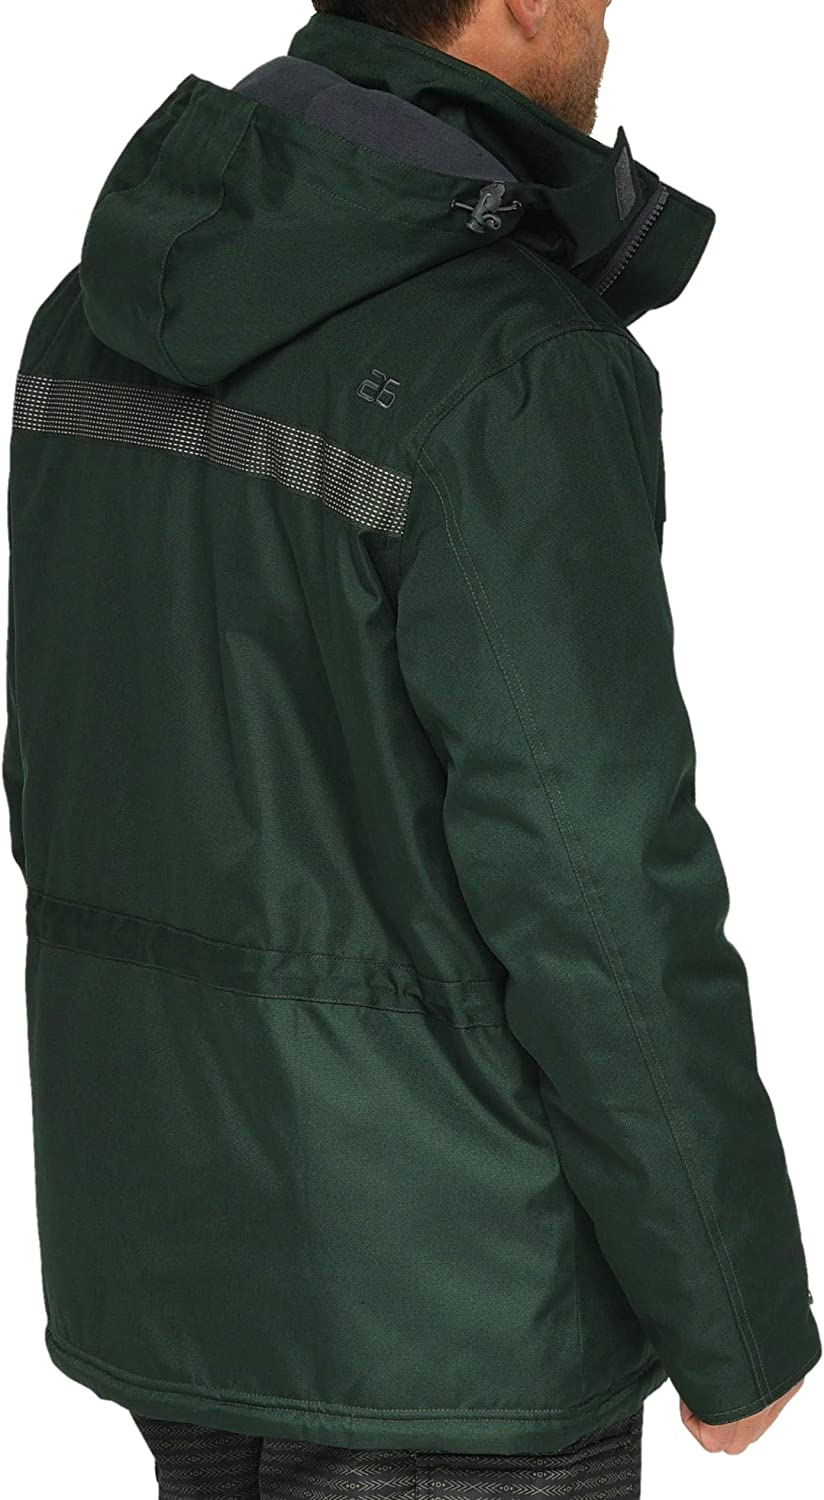 Arctix Mens Performance Tundra Jacket with Added Visibility